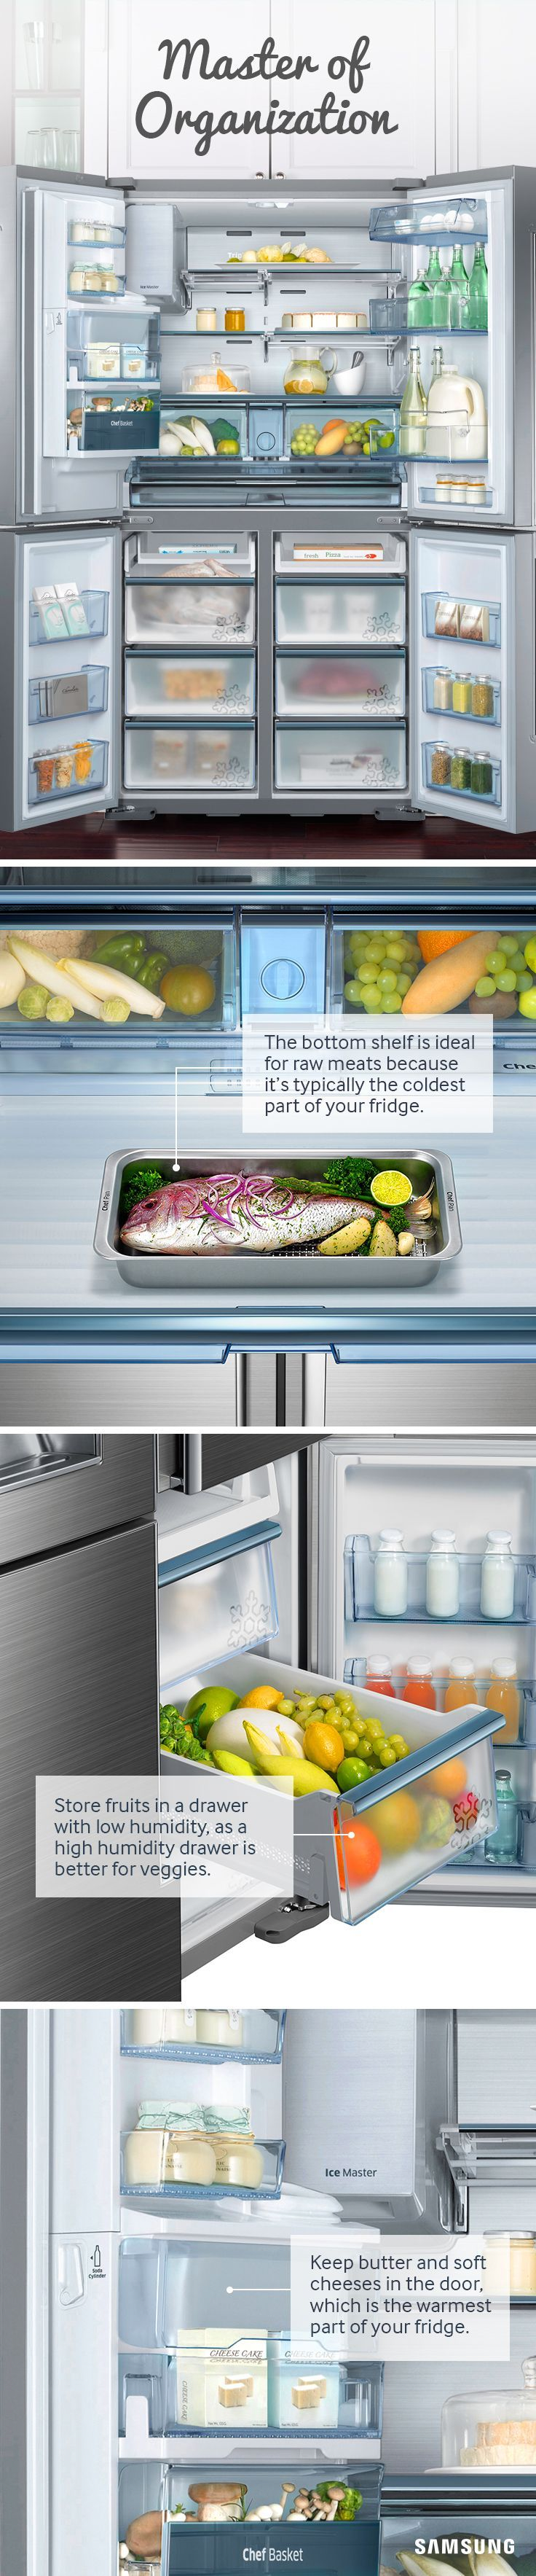 Learn how to organize your fridge like the pros, and maximize space for all your holiday leftovers.